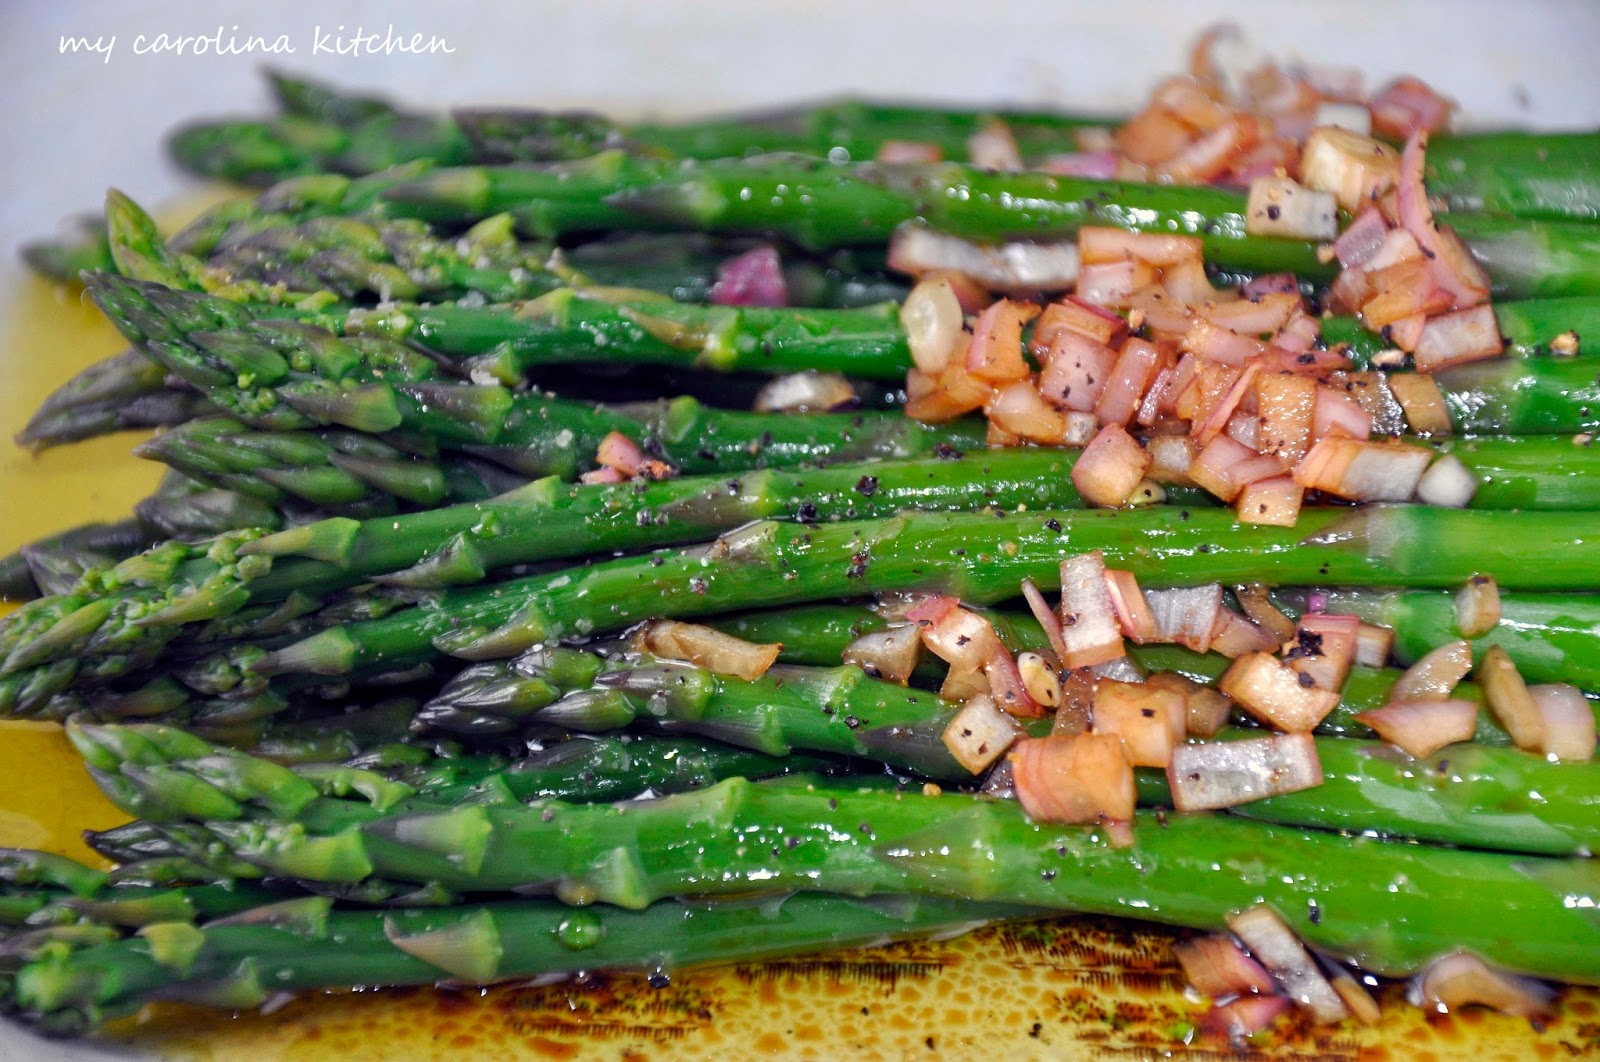 My Carolina Kitchen: Asparagus Paired With An Exciting New Vinegar ...